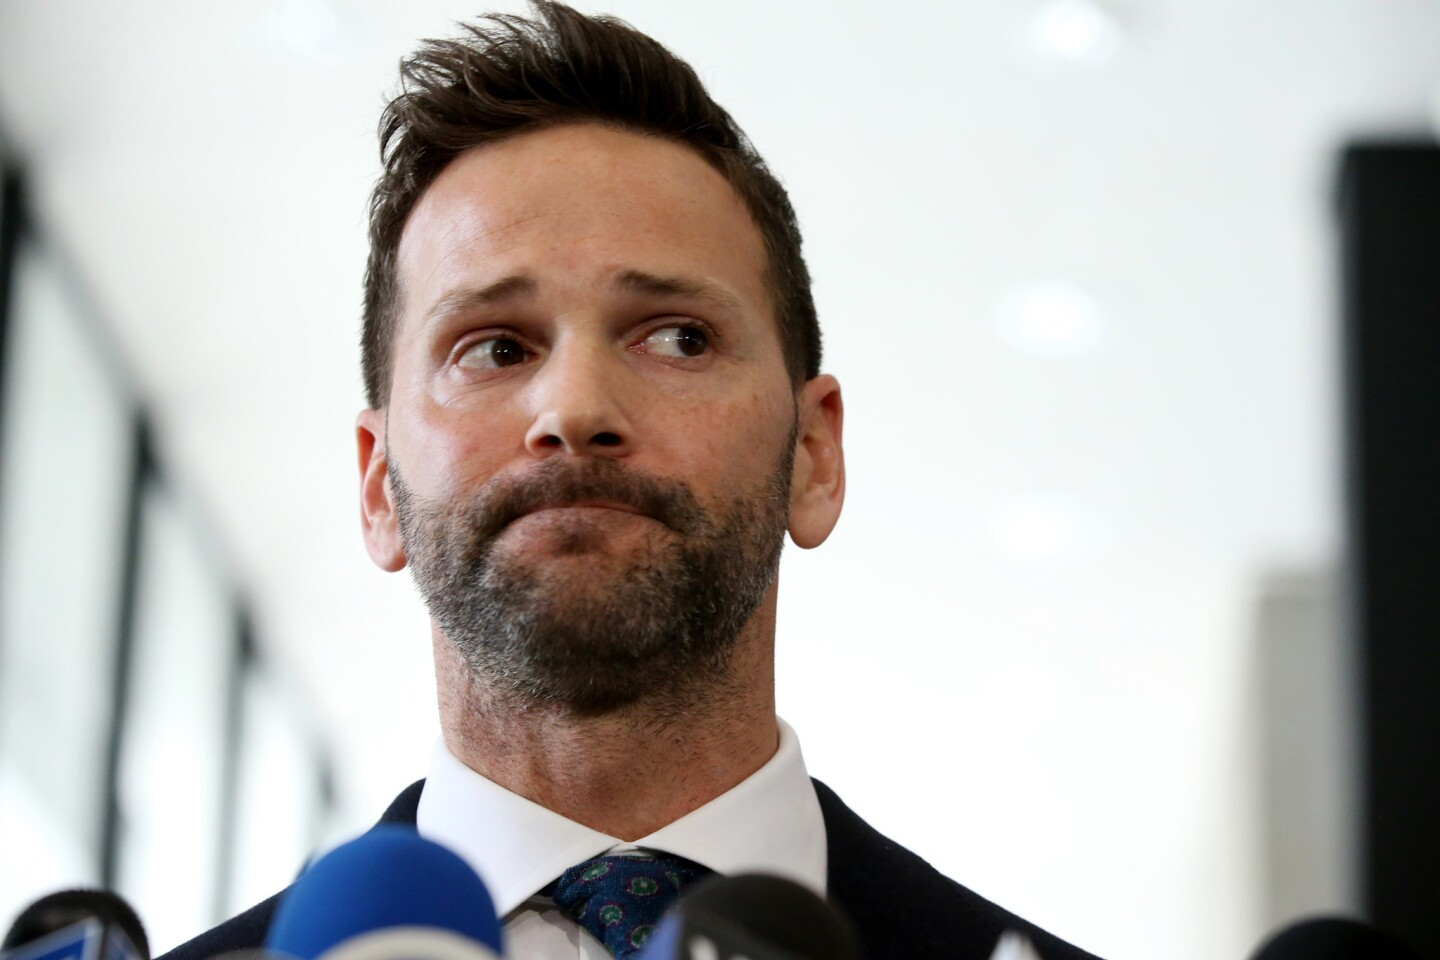 Former U.S. Rep. Aaron Schock appears March 6, 2019 after his scheduled hearing at the U.S. Dirksen Courthouse in Chicago. Federal prosecutors have agreed to drop all charges against him if he pays back money he owes to the Internal Revenue Service and his campaign fund.